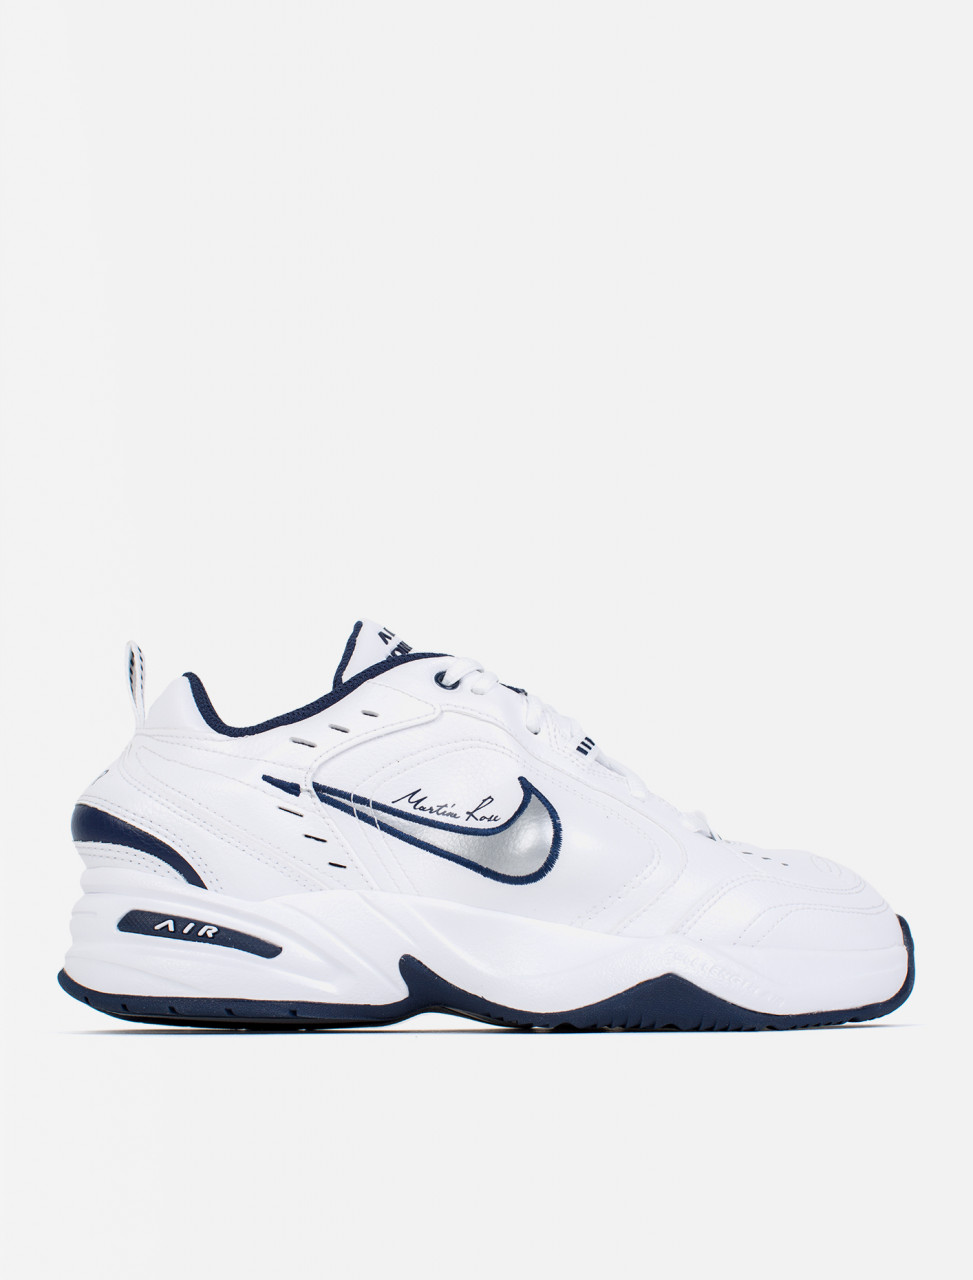 x Martine Rose Air Monarch IV Sneaker